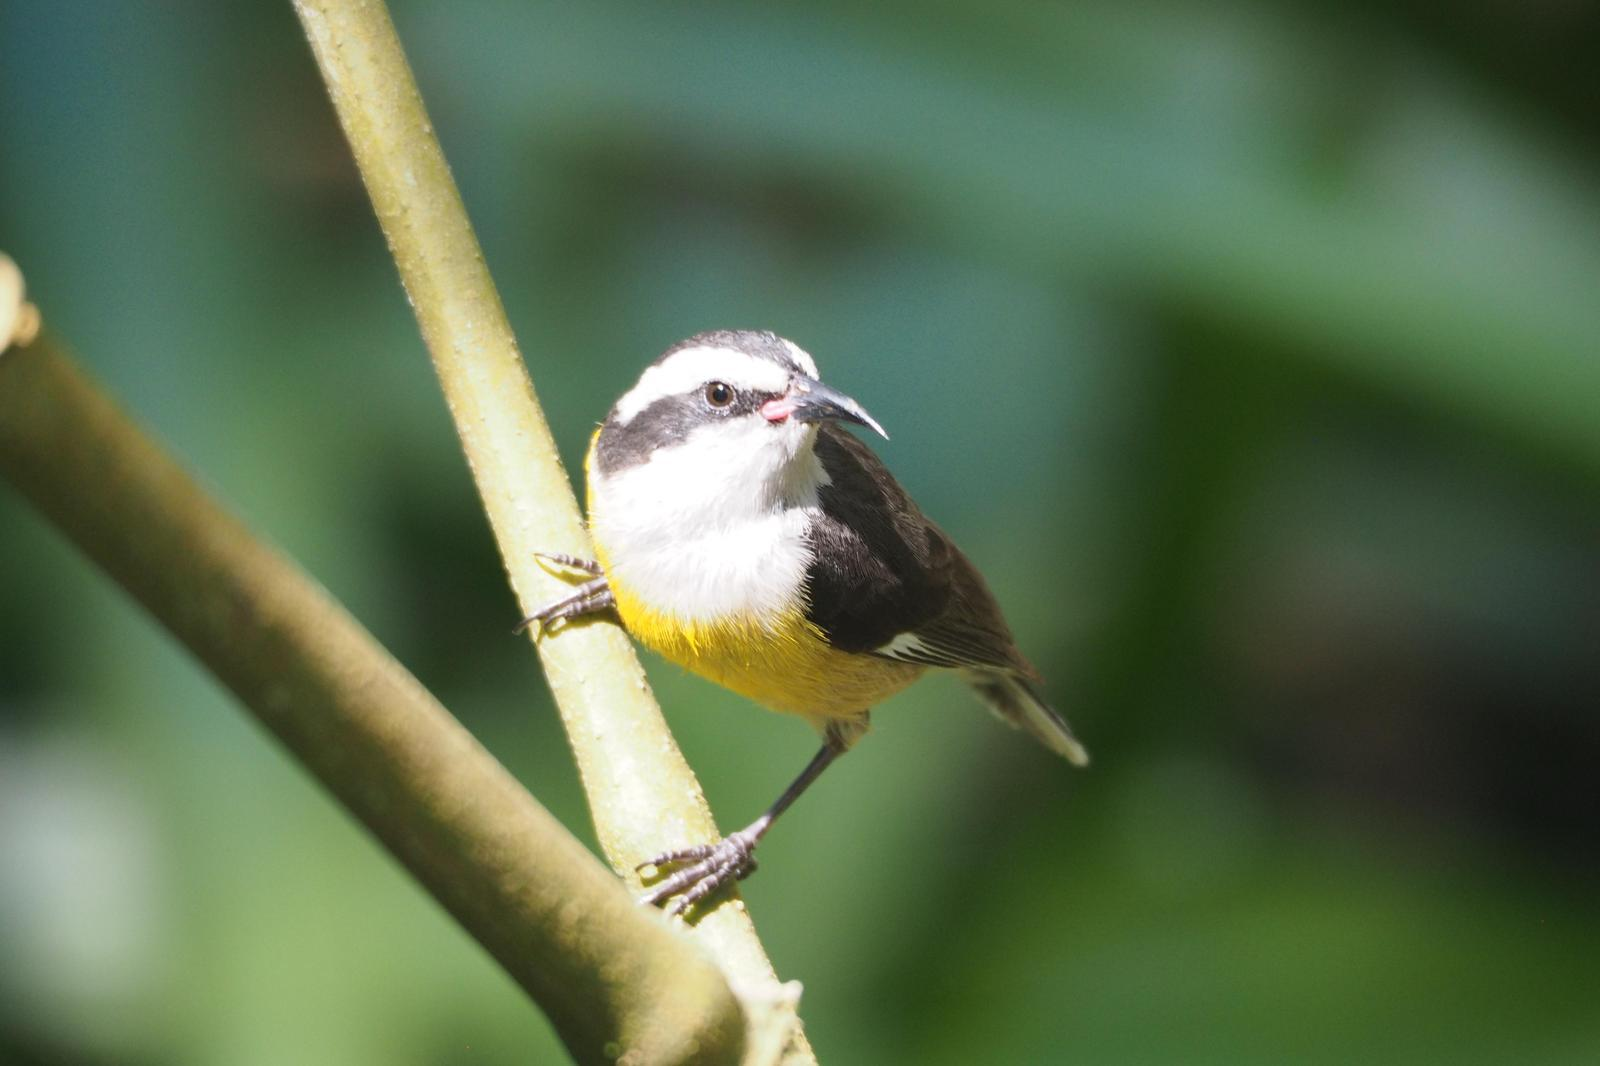 Bananaquit Photo by Colin Hill